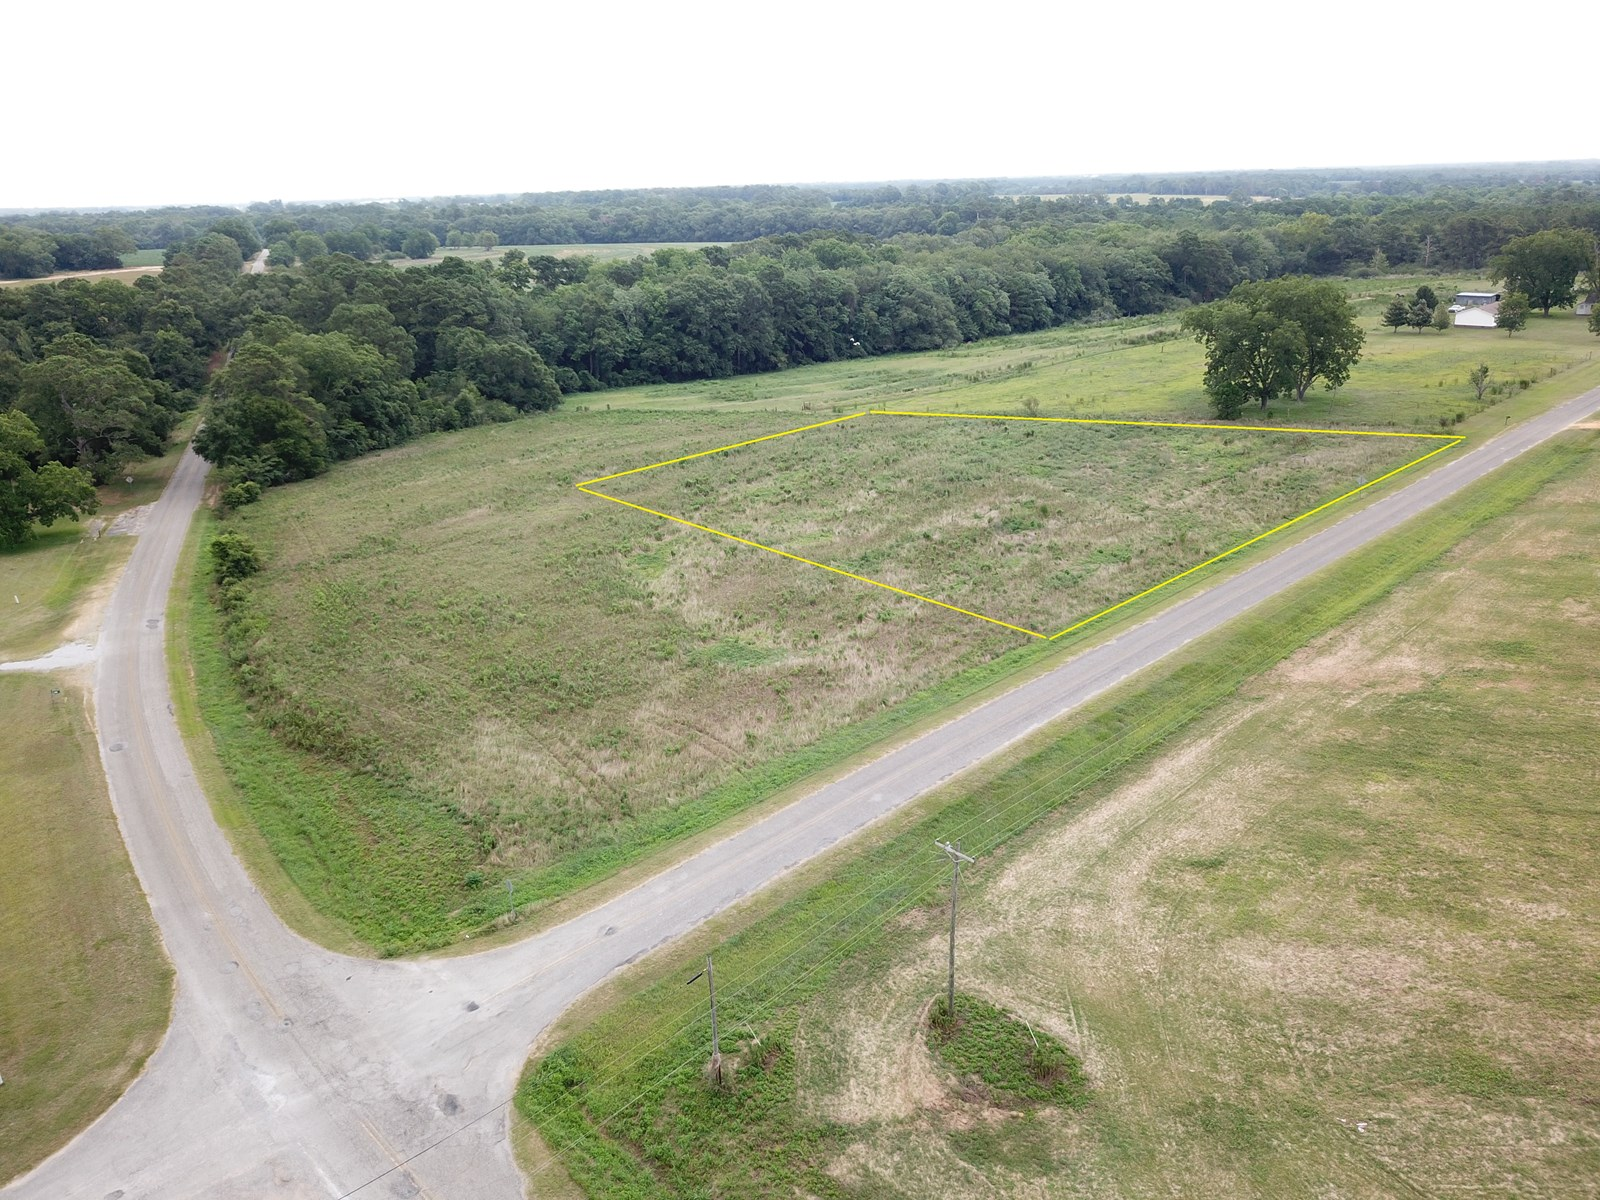 1.5 Acres for sale in Hartford, AL on County Rd 16